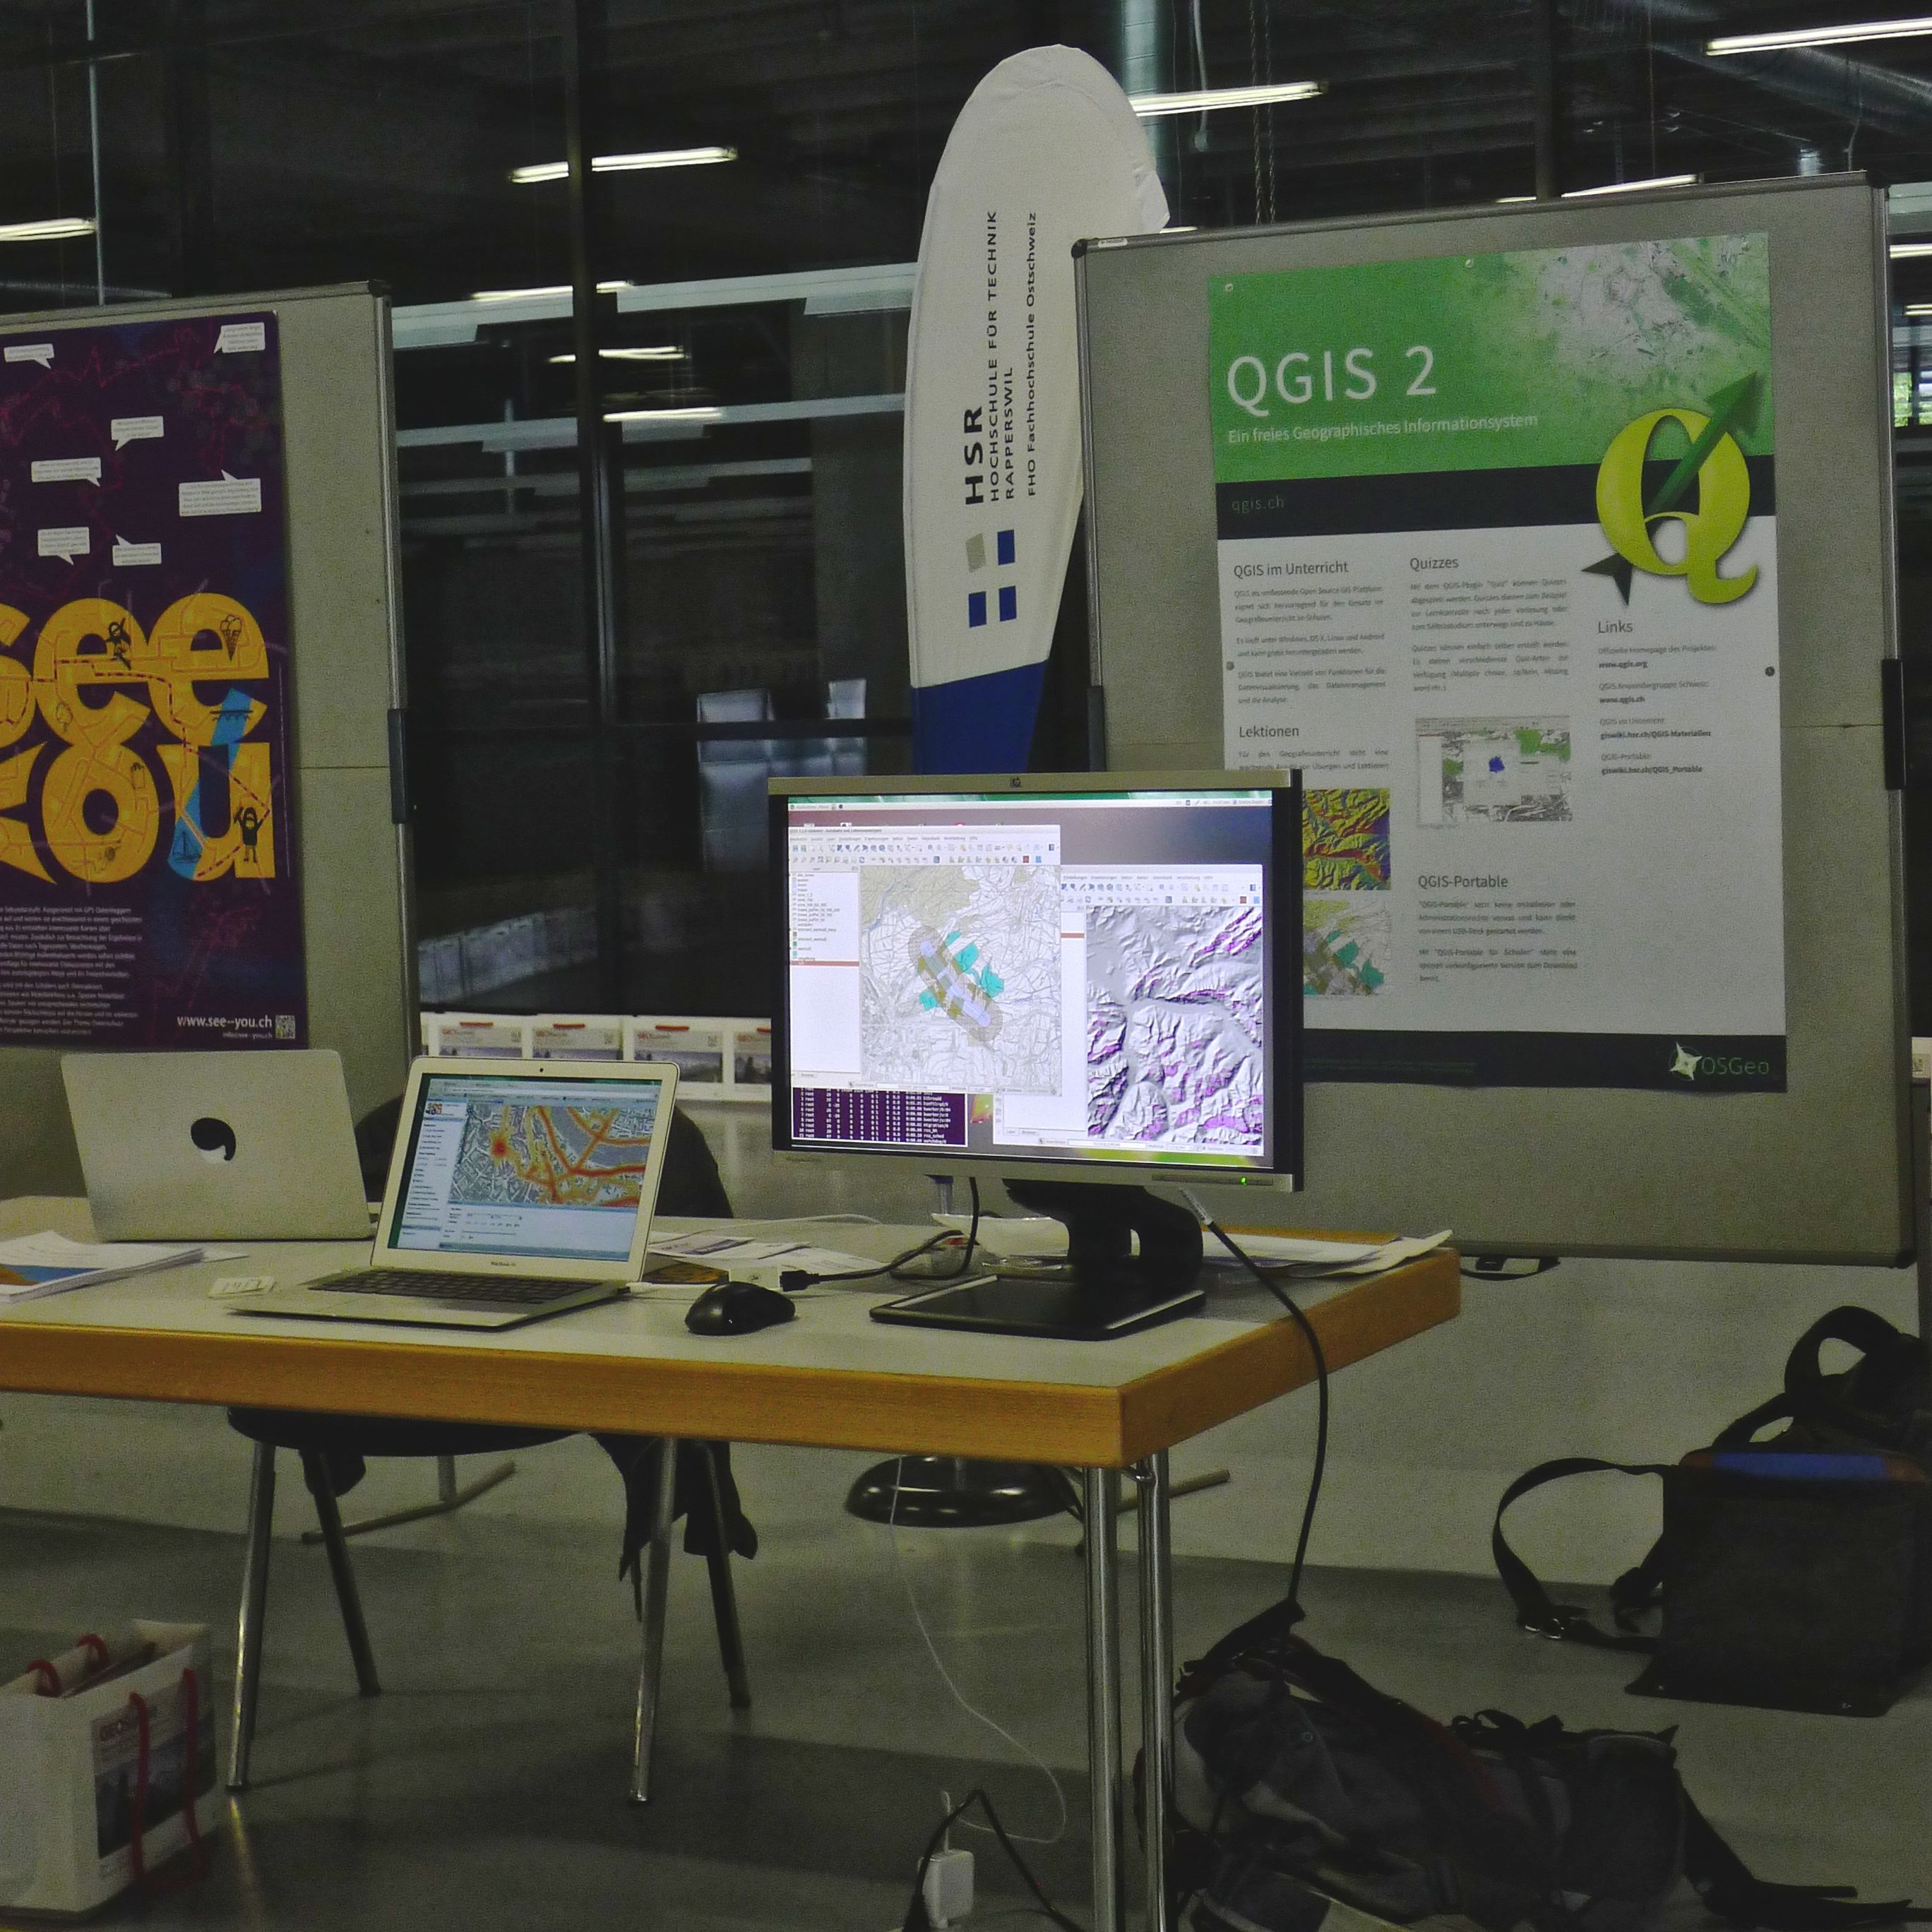 QGIS booth at the GEOSchool-Day (Geosummit 2014)